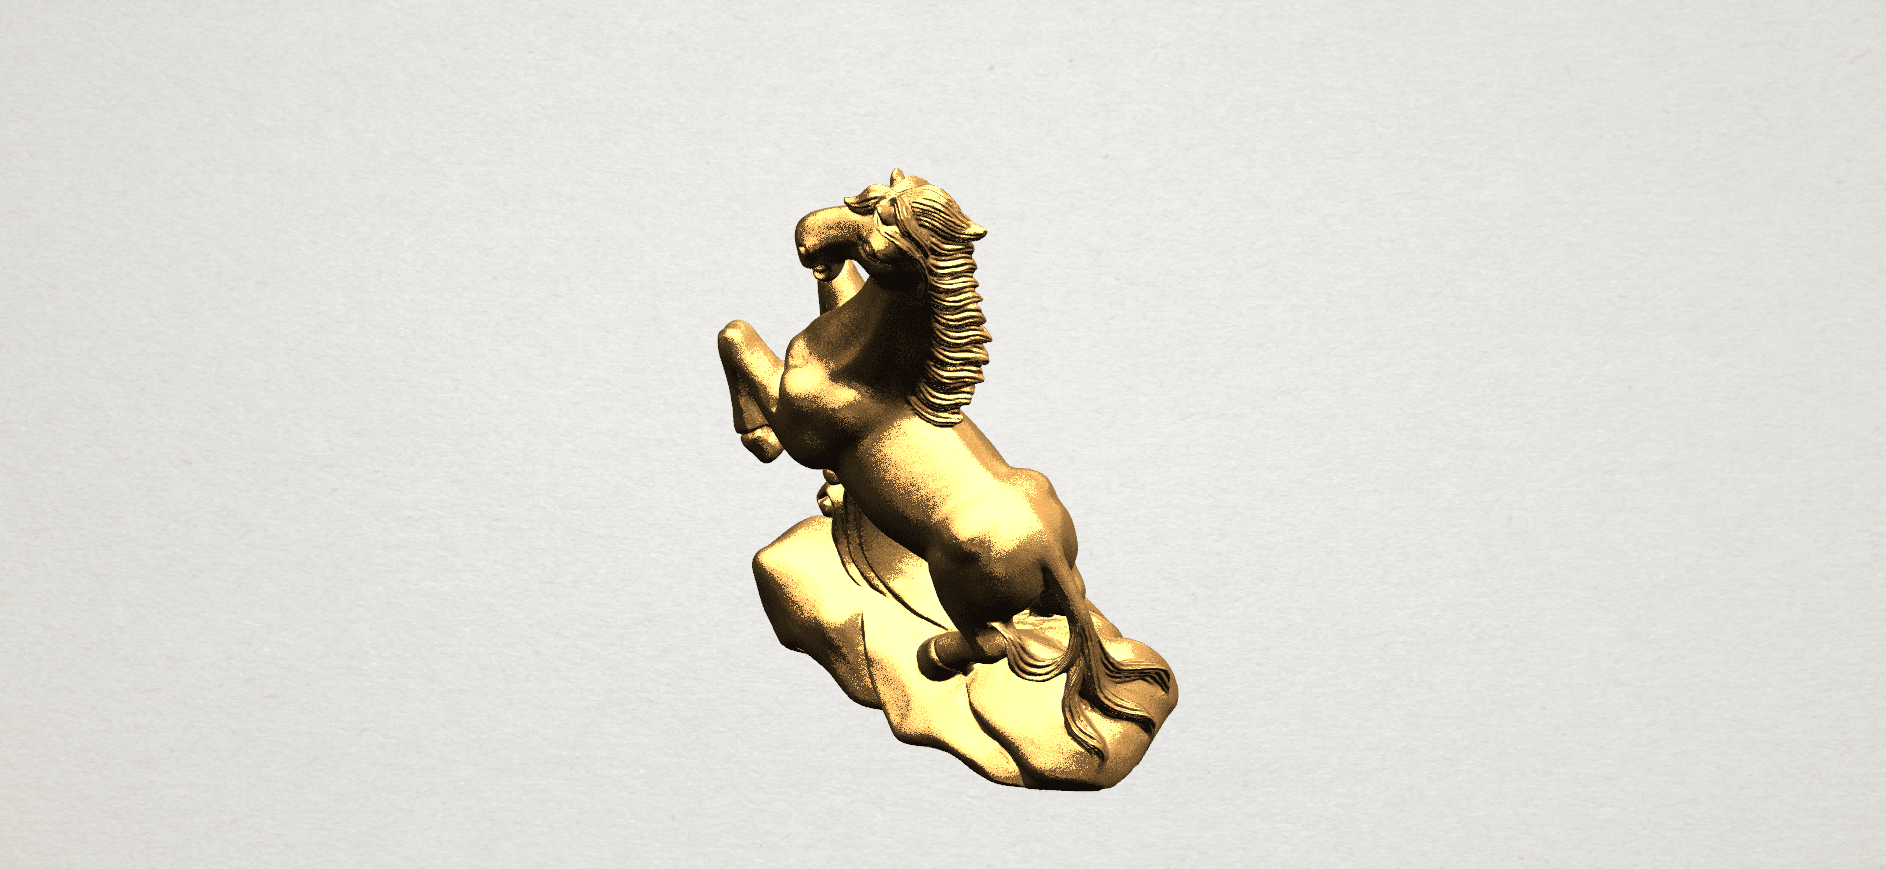 Chinese Horoscope07-01.png Download free STL file Chinese Horoscope 07 Horse • 3D printer model, GeorgesNikkei